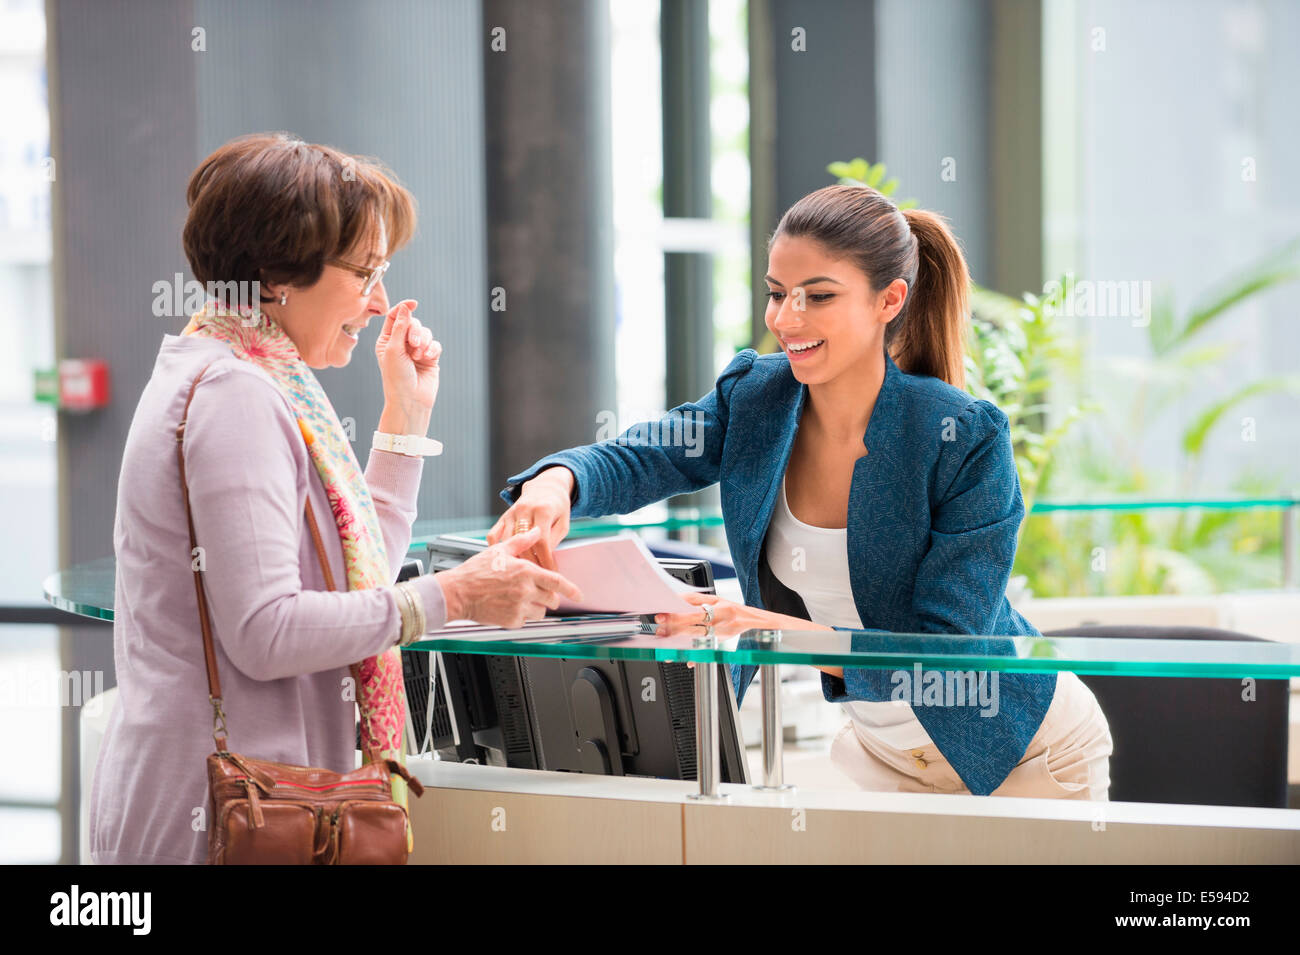 Female receptionist handing papers to a woman at reception desk - Stock Image